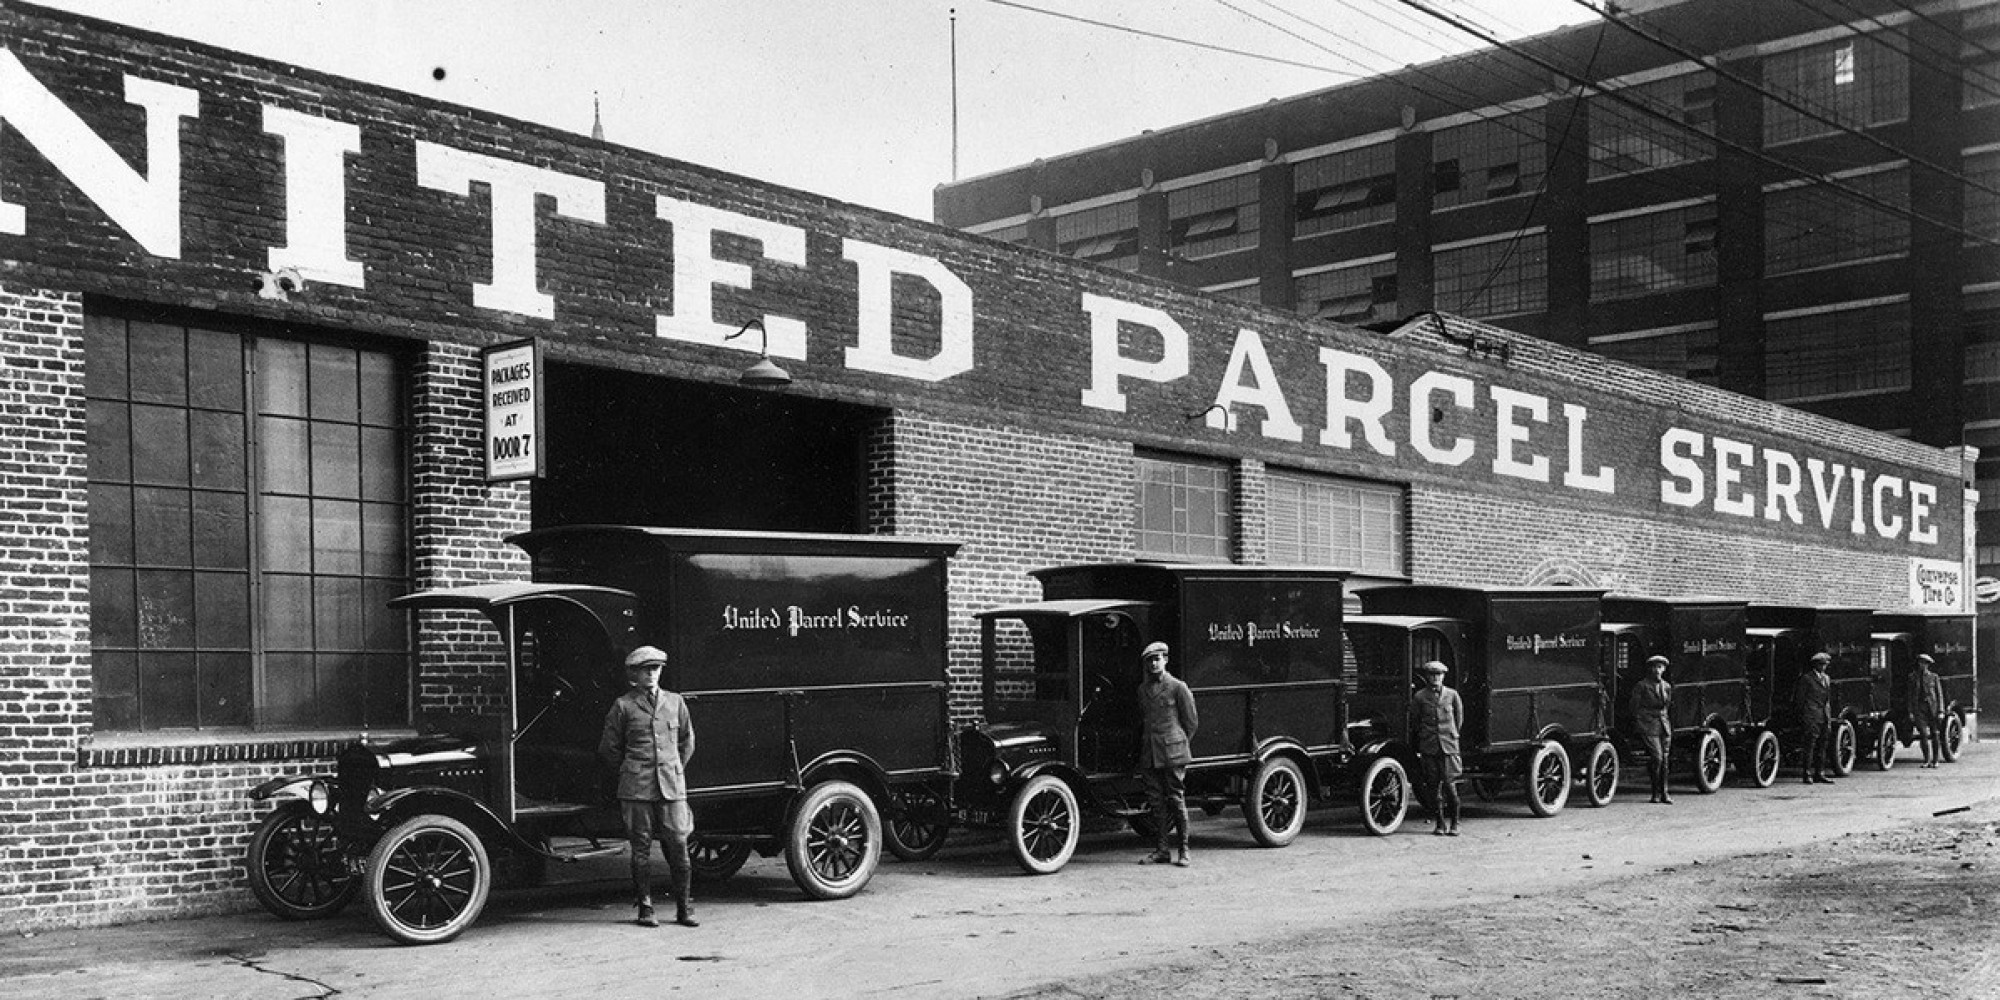 Old Ups Trucks For Sale >> These Old School Photos Show The Evolution Of UPS' Big Brown Delivery Fleet | HuffPost